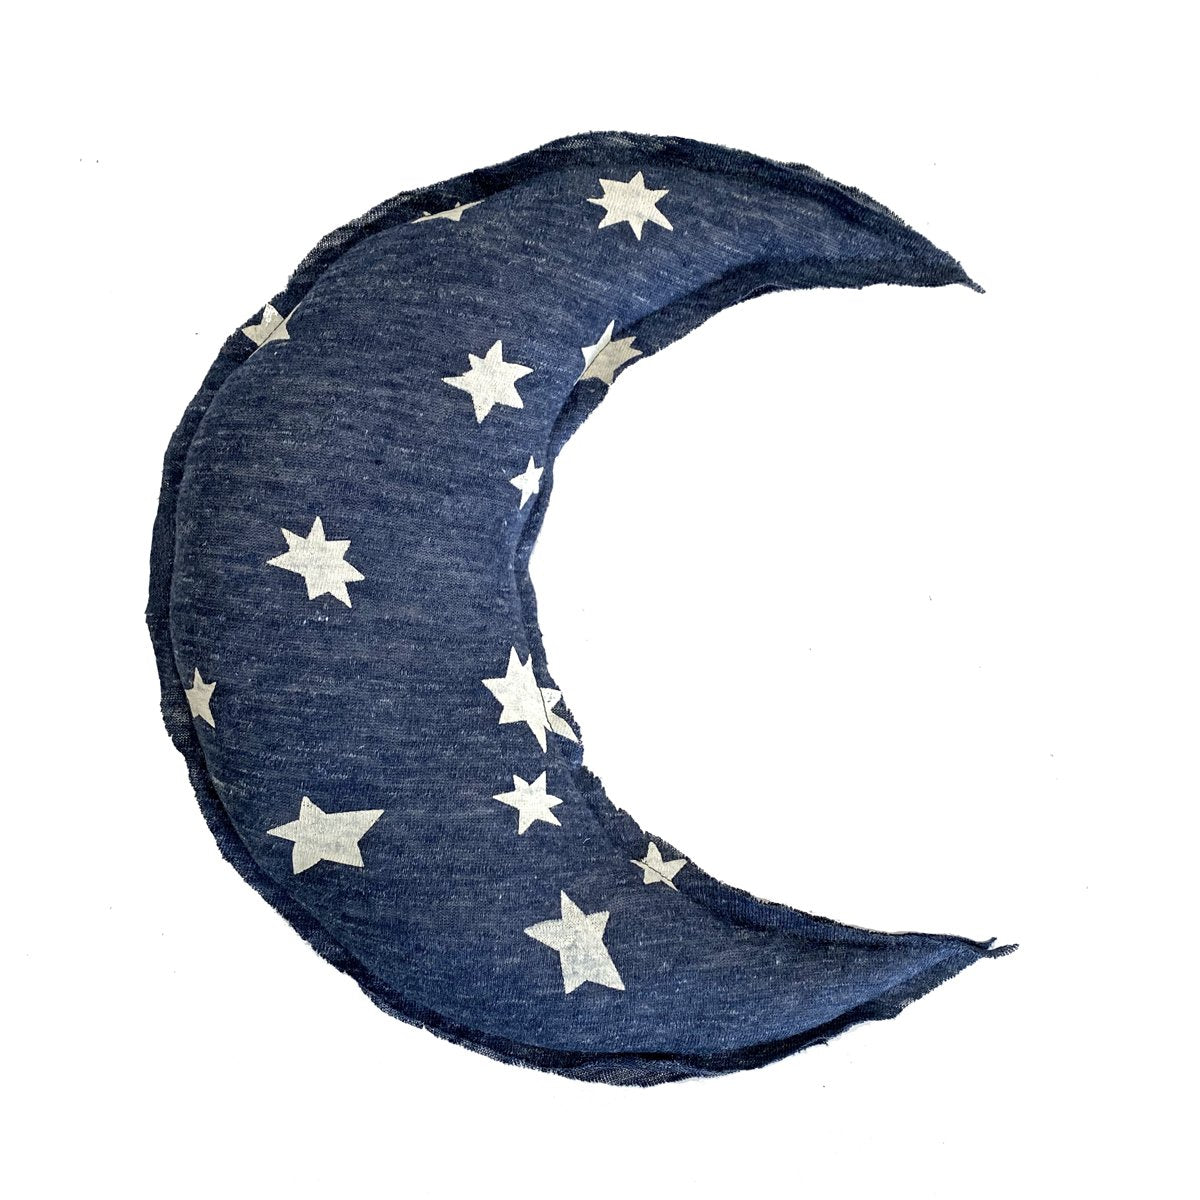 Crescent Moon Shaped Pillow - Cluster Star Print